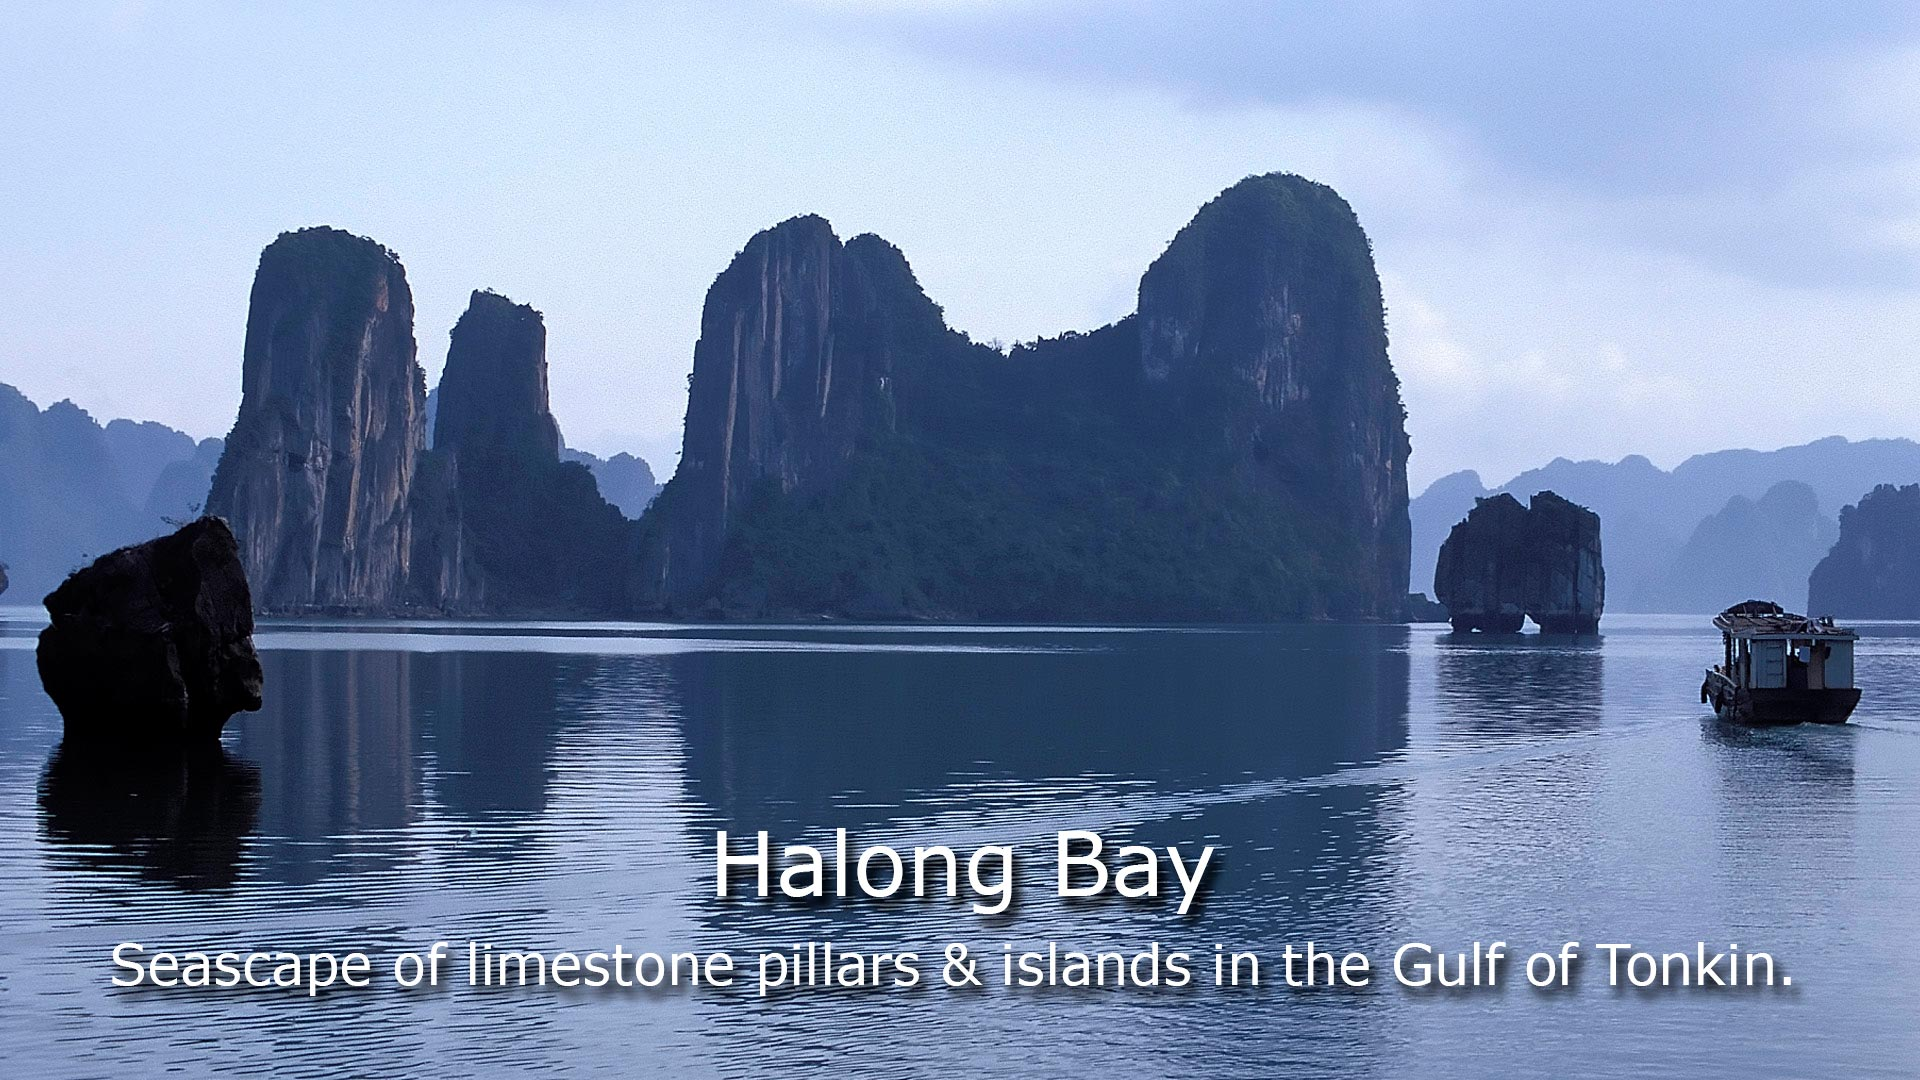 Halong Bay - Seascape of limestone pillars & islands in the gulf of Tonkin